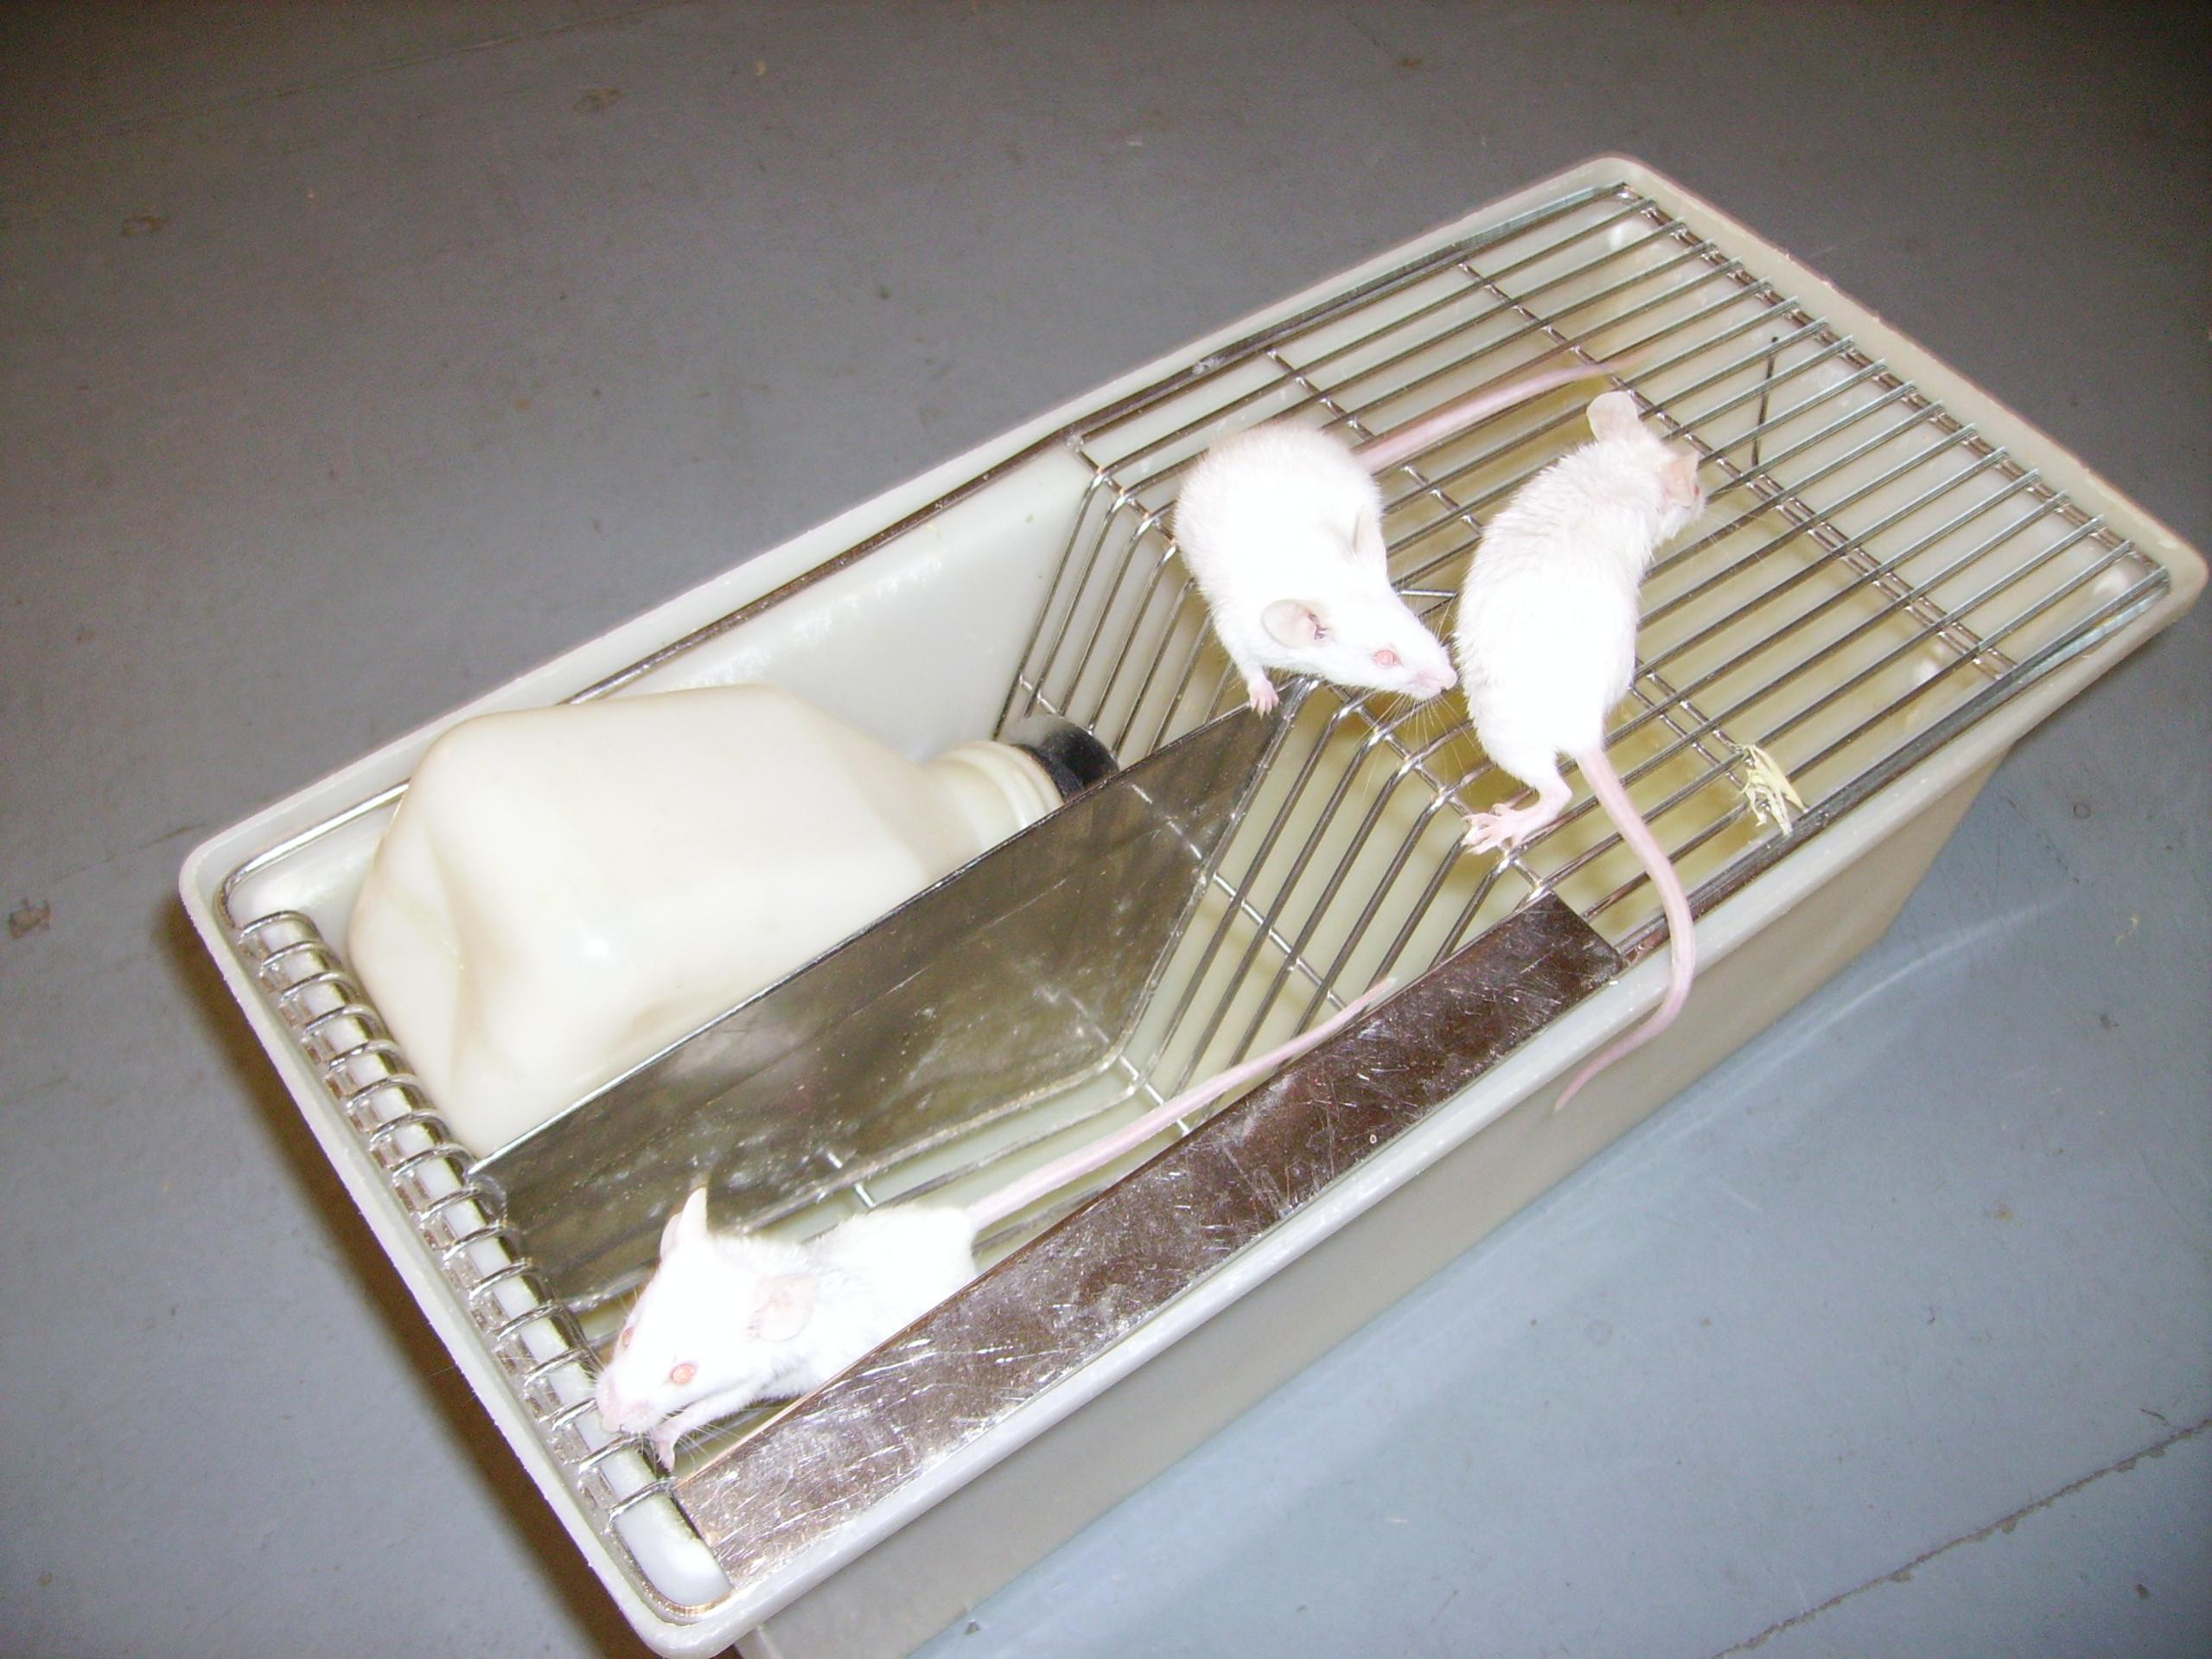 NW England Lab breeder cages and lab mice - Reptile Forums